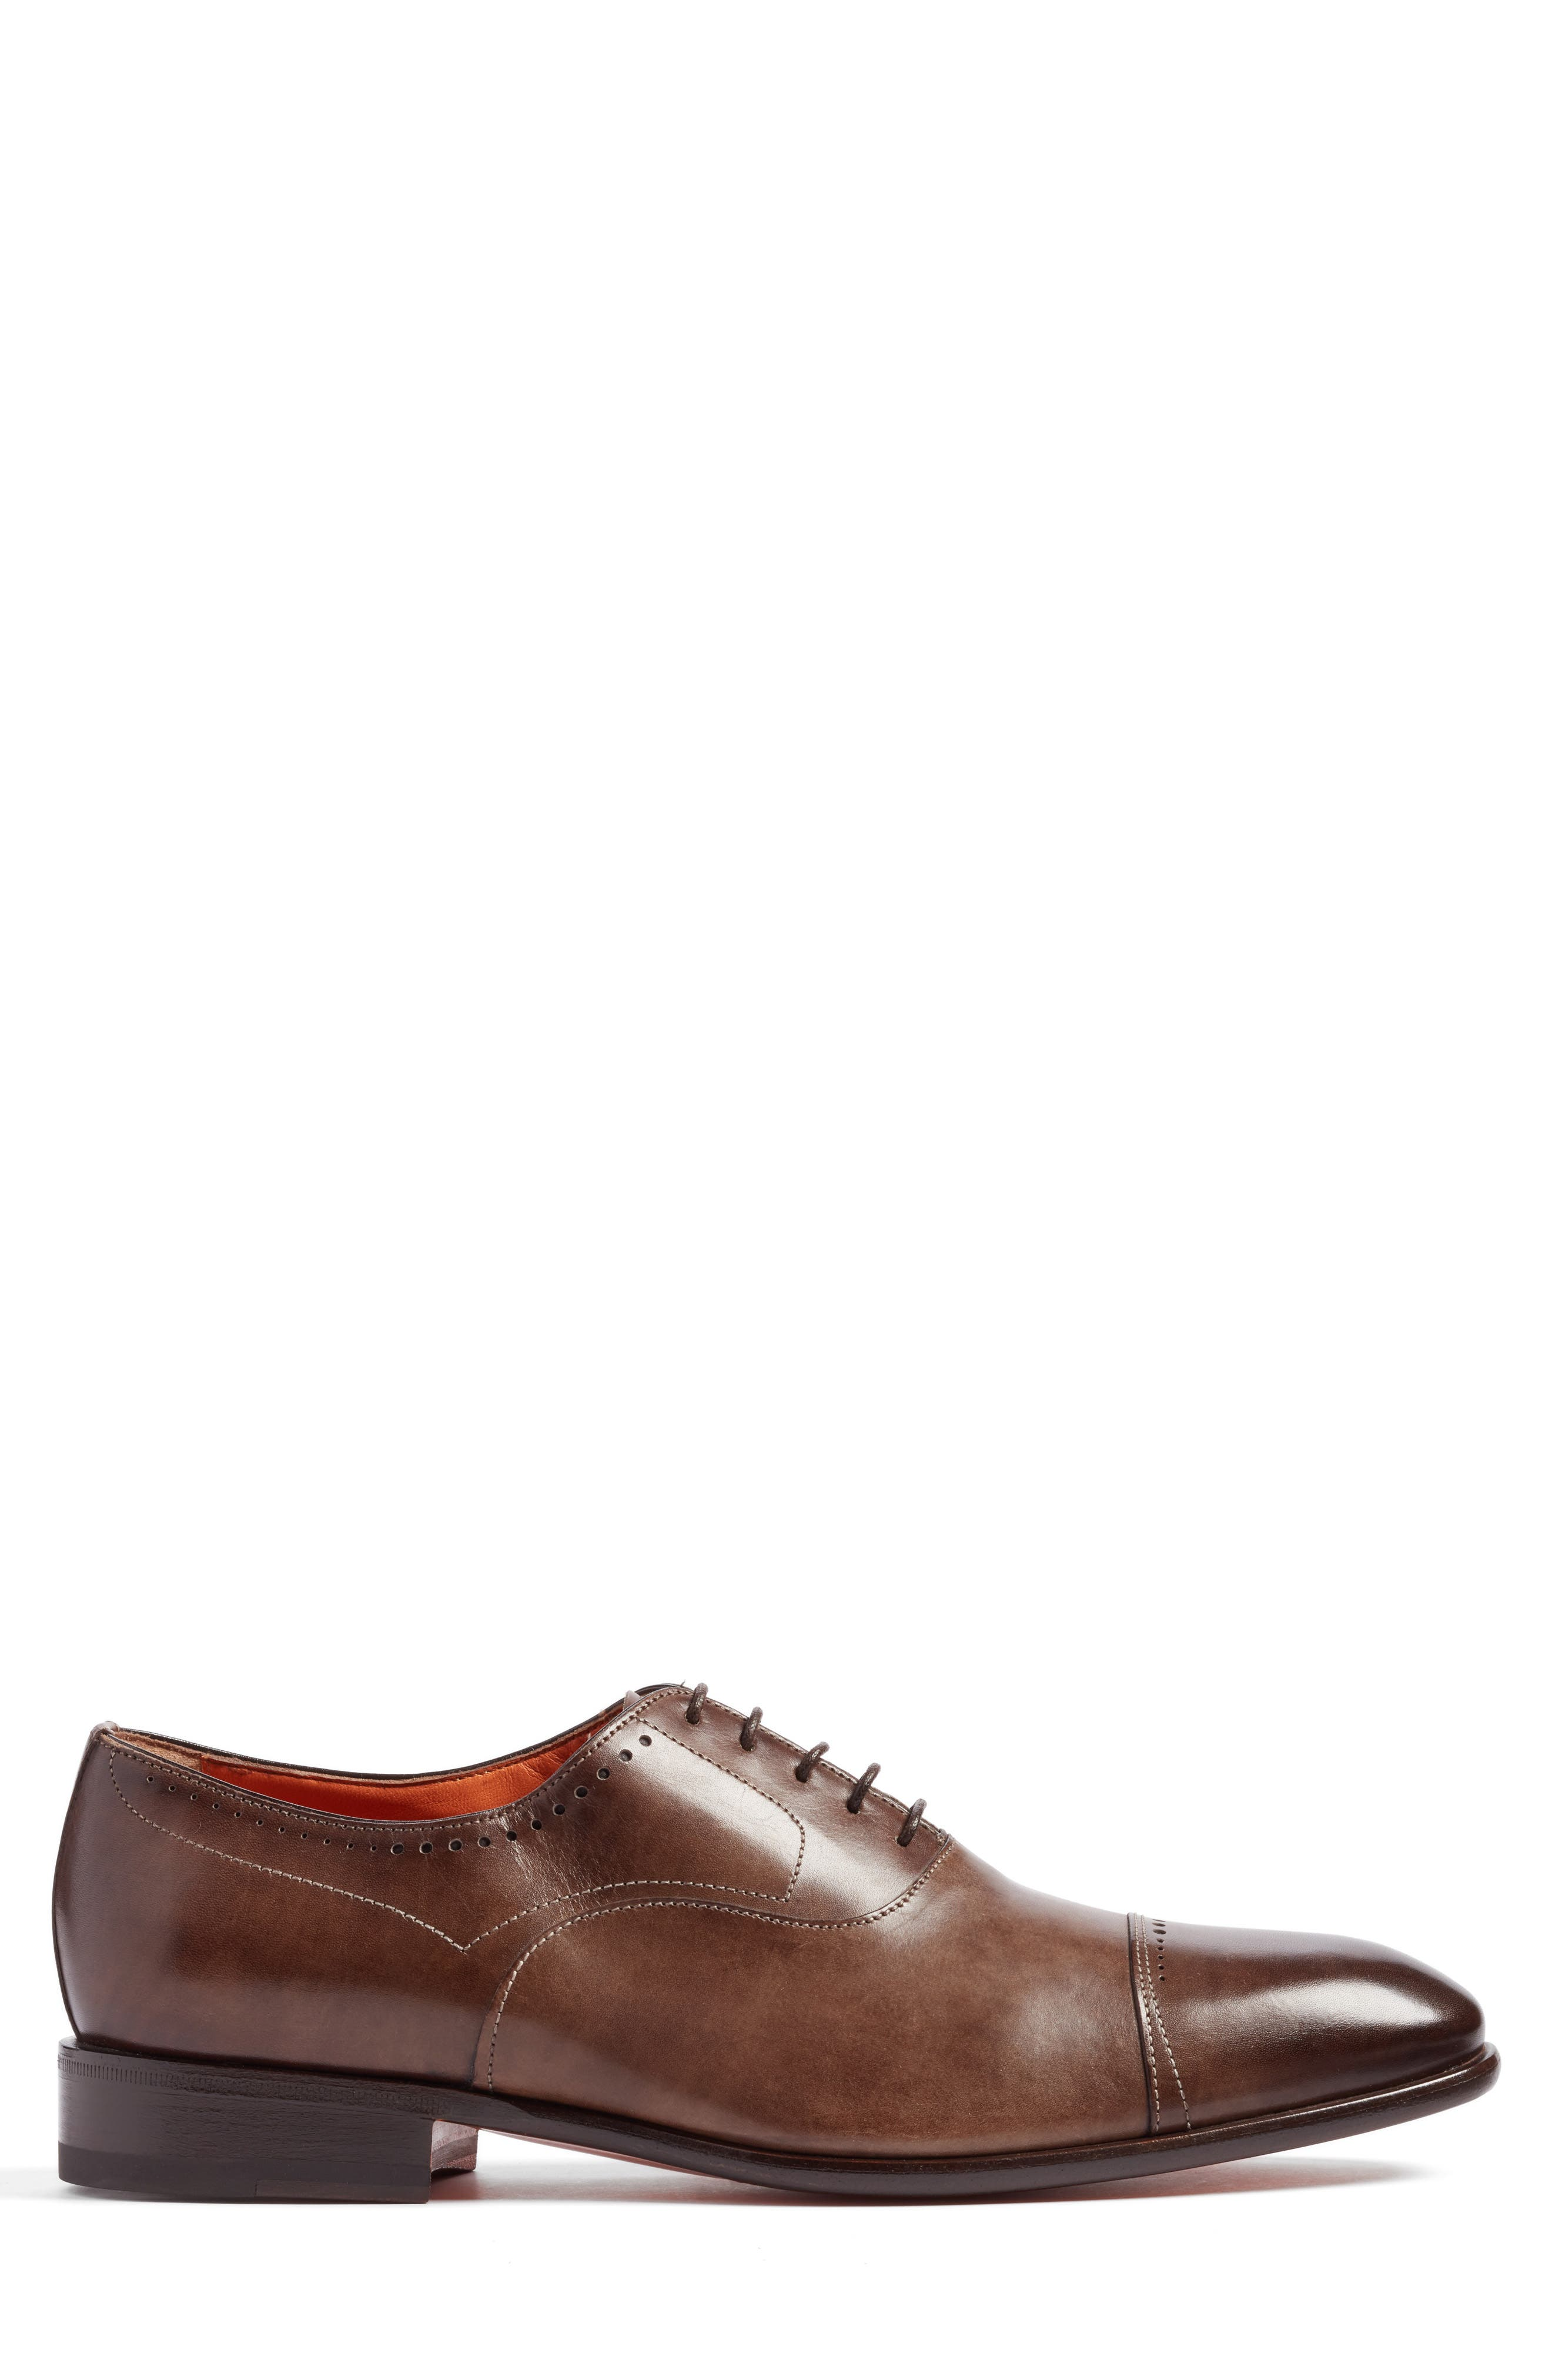 Thurman Cap Toe Oxford,                             Alternate thumbnail 3, color,                             Dark Brown Leather